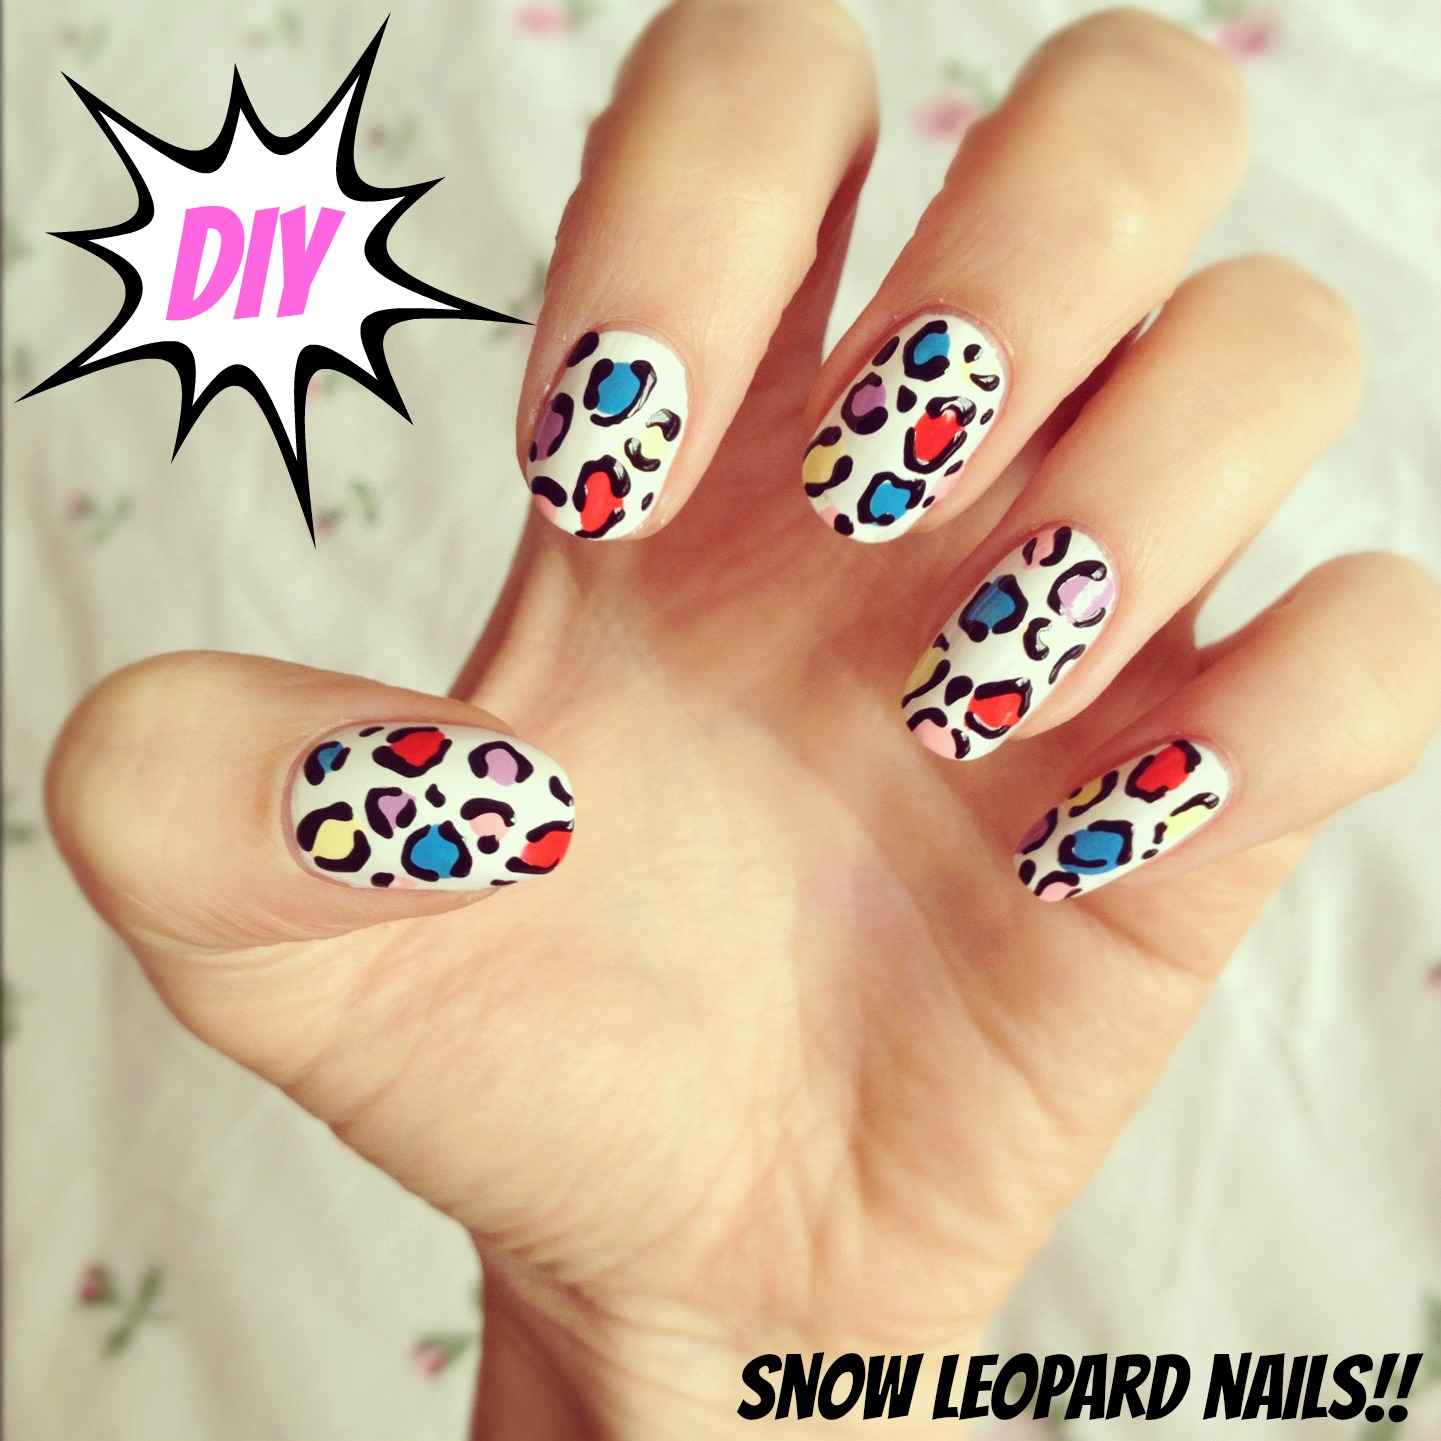 Animal Nail Art: DIY Snow Leopard Nail Art!